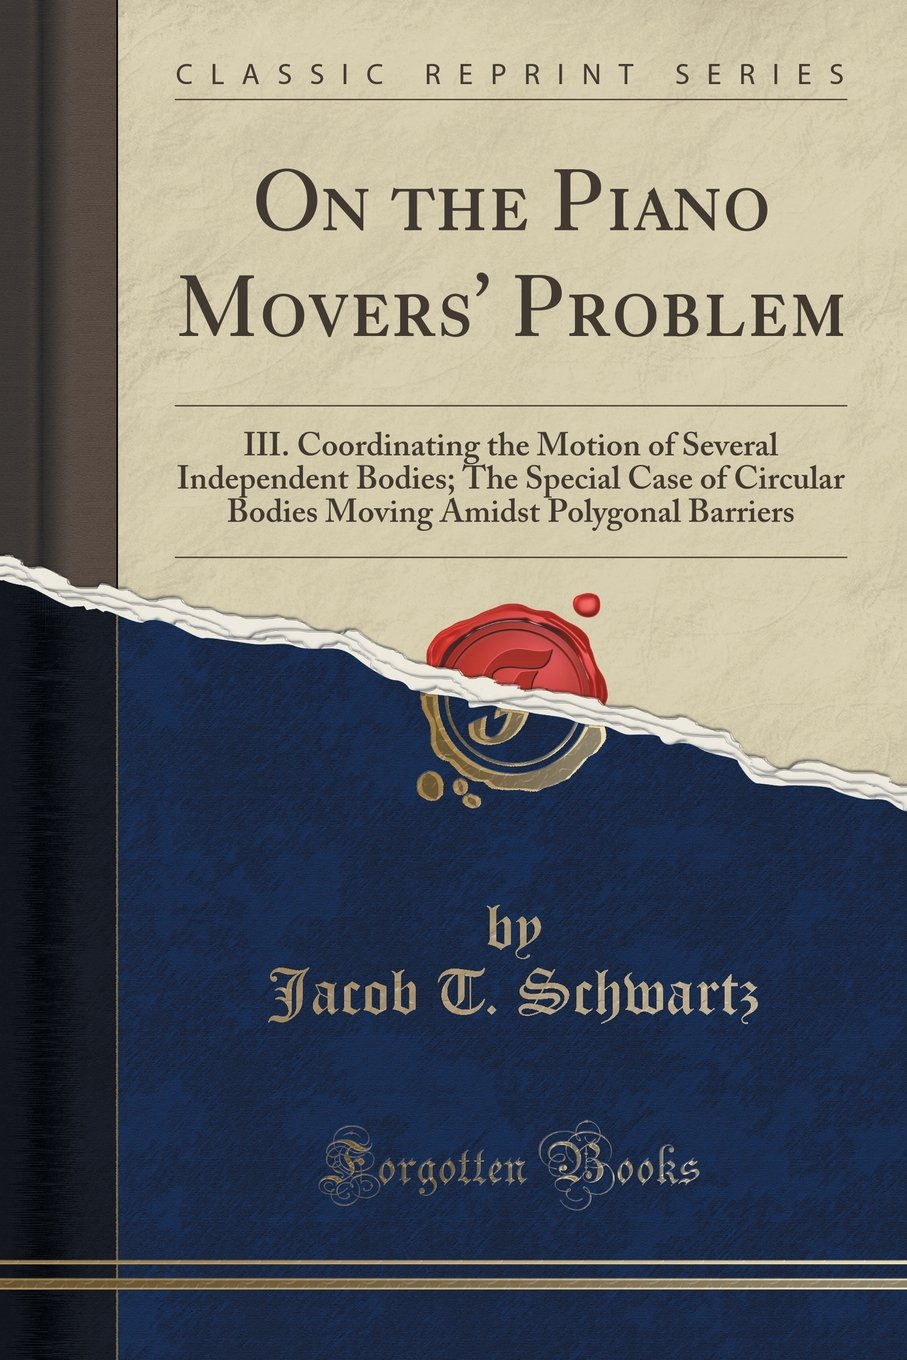 Download On the Piano Movers' Problem: III. Coordinating the Motion of Several Independent Bodies; The Special Case of Circular Bodies Moving Amidst Polygonal Barriers (Classic Reprint) pdf epub